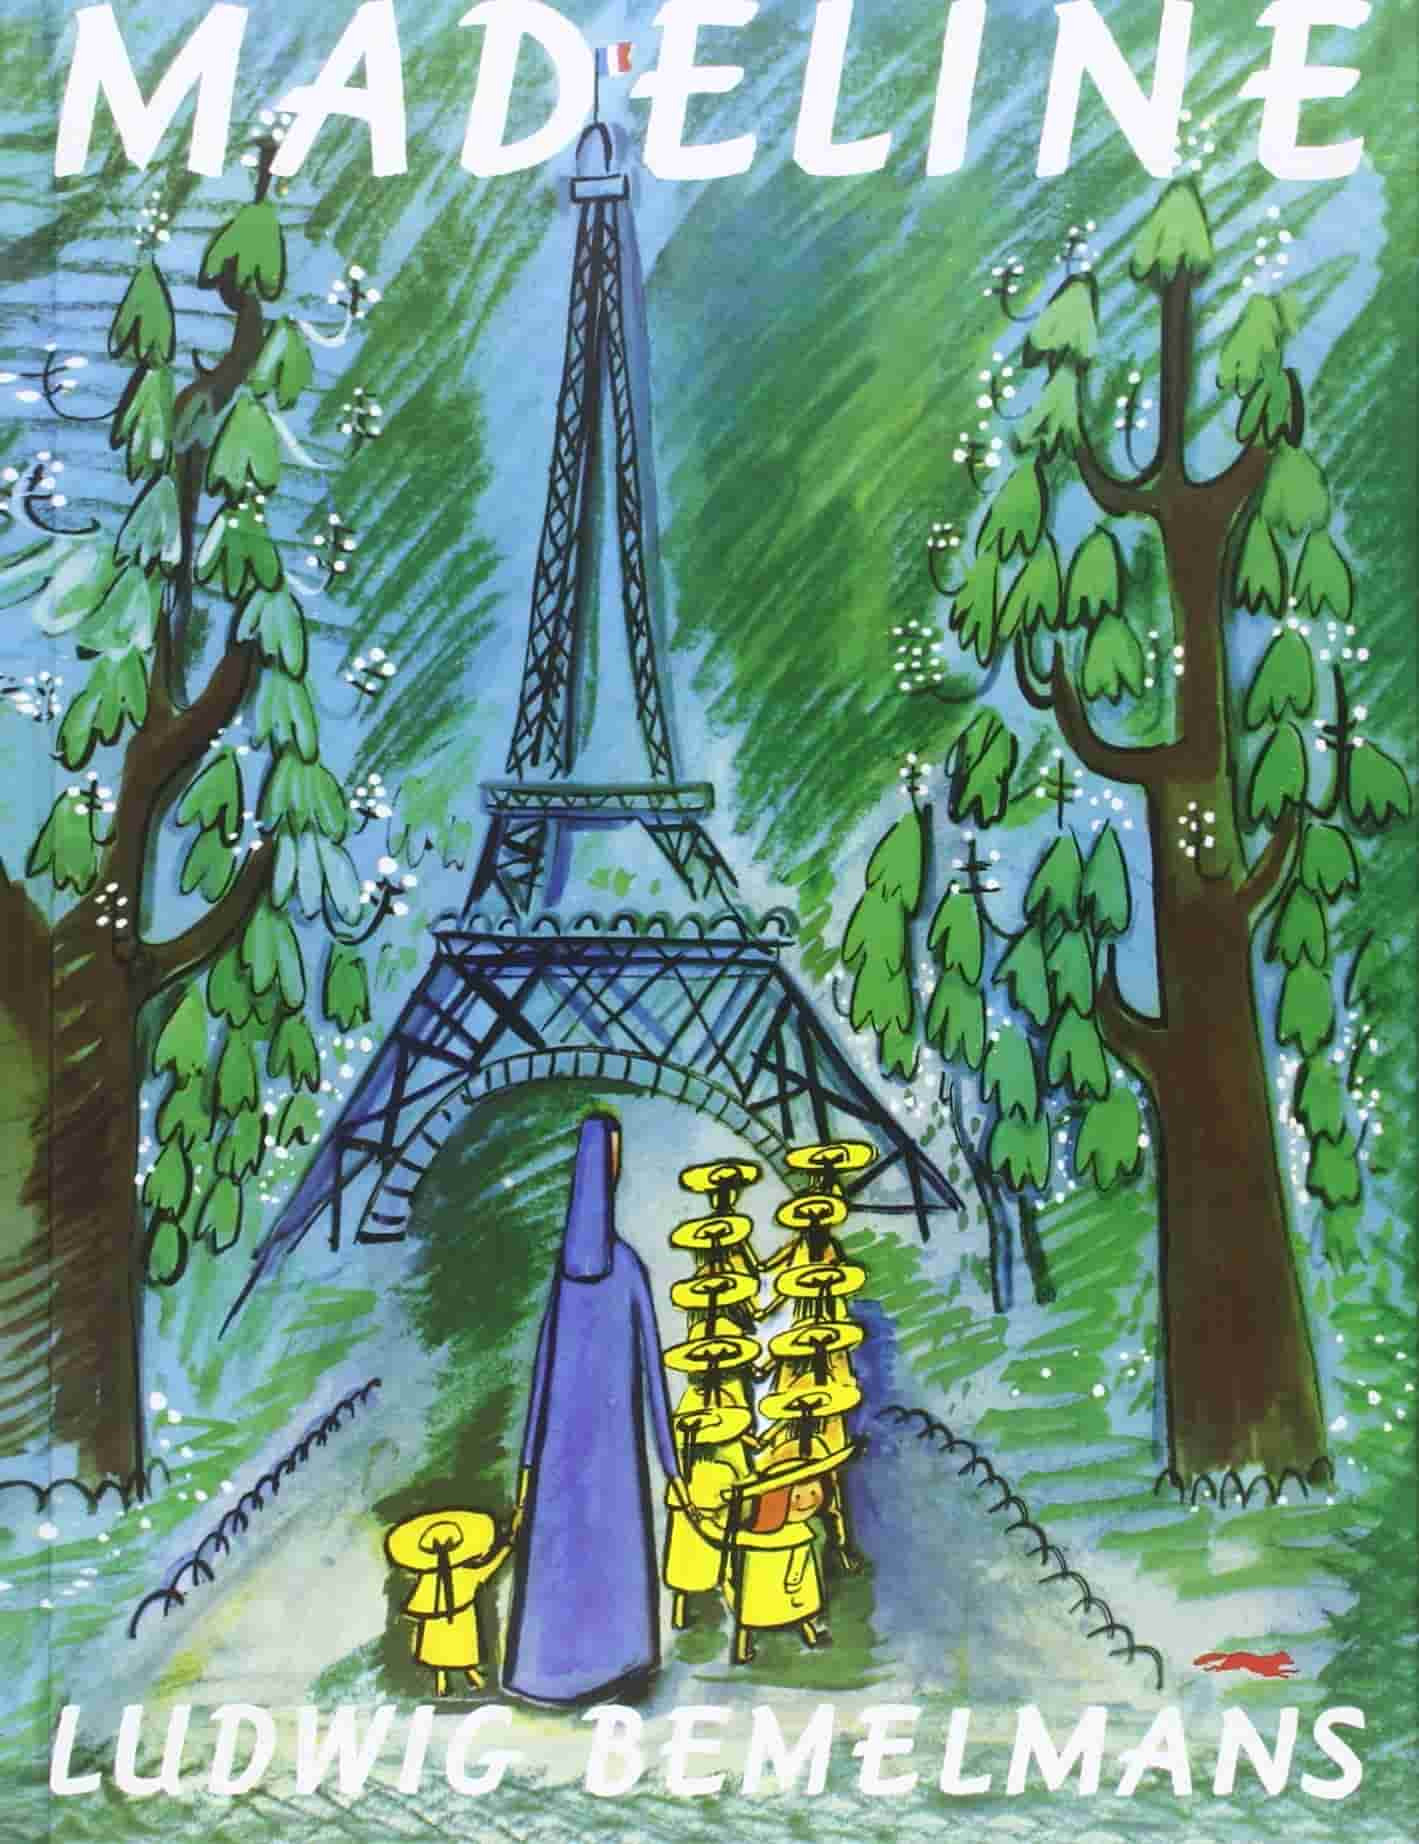 Madeline by Ludwig Bemelmans book cover.